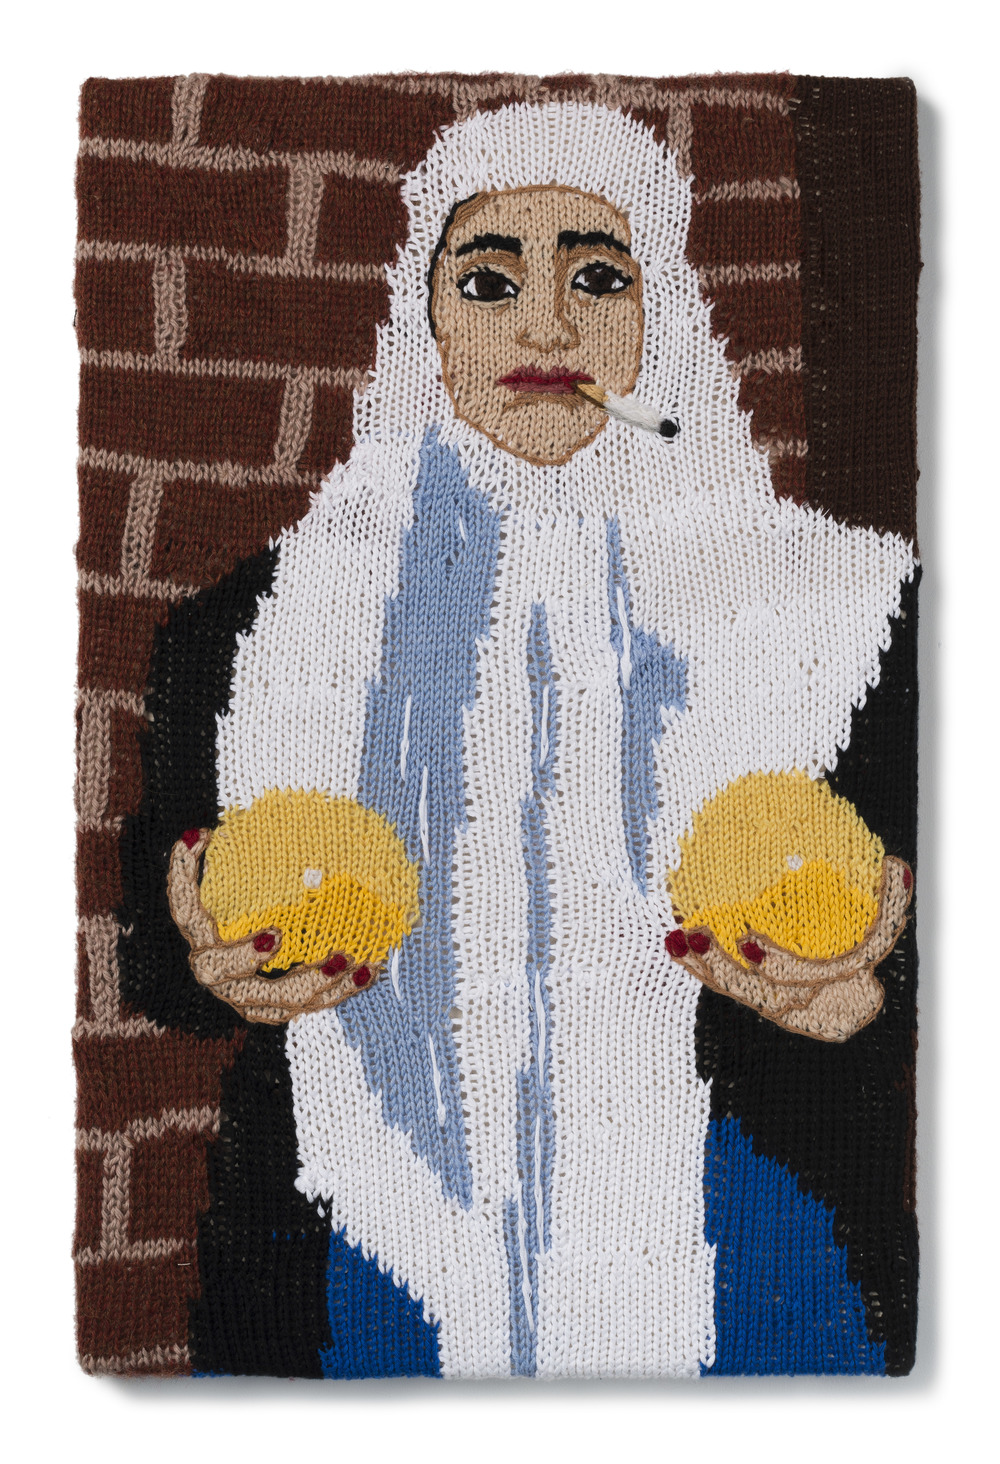 "Feminist Fan #22 (Sarah Maple, Self Portrait with Melons, 2012), 2016          Normal   0           false   false   false     EN-AU   JA   X-NONE                                                                                                                                                                                                                                                                                                                                                                           /* Style Definitions */  table.MsoNormalTable 	{mso-style-name:""Table Normal""; 	mso-tstyle-rowband-size:0; 	mso-tstyle-colband-size:0; 	mso-style-noshow:yes; 	mso-style-priority:99; 	mso-style-parent:""""; 	mso-padding-alt:0in 5.4pt 0in 5.4pt; 	mso-para-margin-top:0in; 	mso-para-margin-right:0in; 	mso-para-margin-bottom:10.0pt; 	mso-para-margin-left:0in; 	line-height:115%; 	mso-pagination:widow-orphan; 	font-size:11.0pt; 	font-family:""Calibri"",""sans-serif""; 	mso-ascii-font-family:Calibri; 	mso-ascii-theme-font:minor-latin; 	mso-hansi-font-family:Calibri; 	mso-hansi-theme-font:minor-latin; 	mso-fareast-language:EN-US;}"